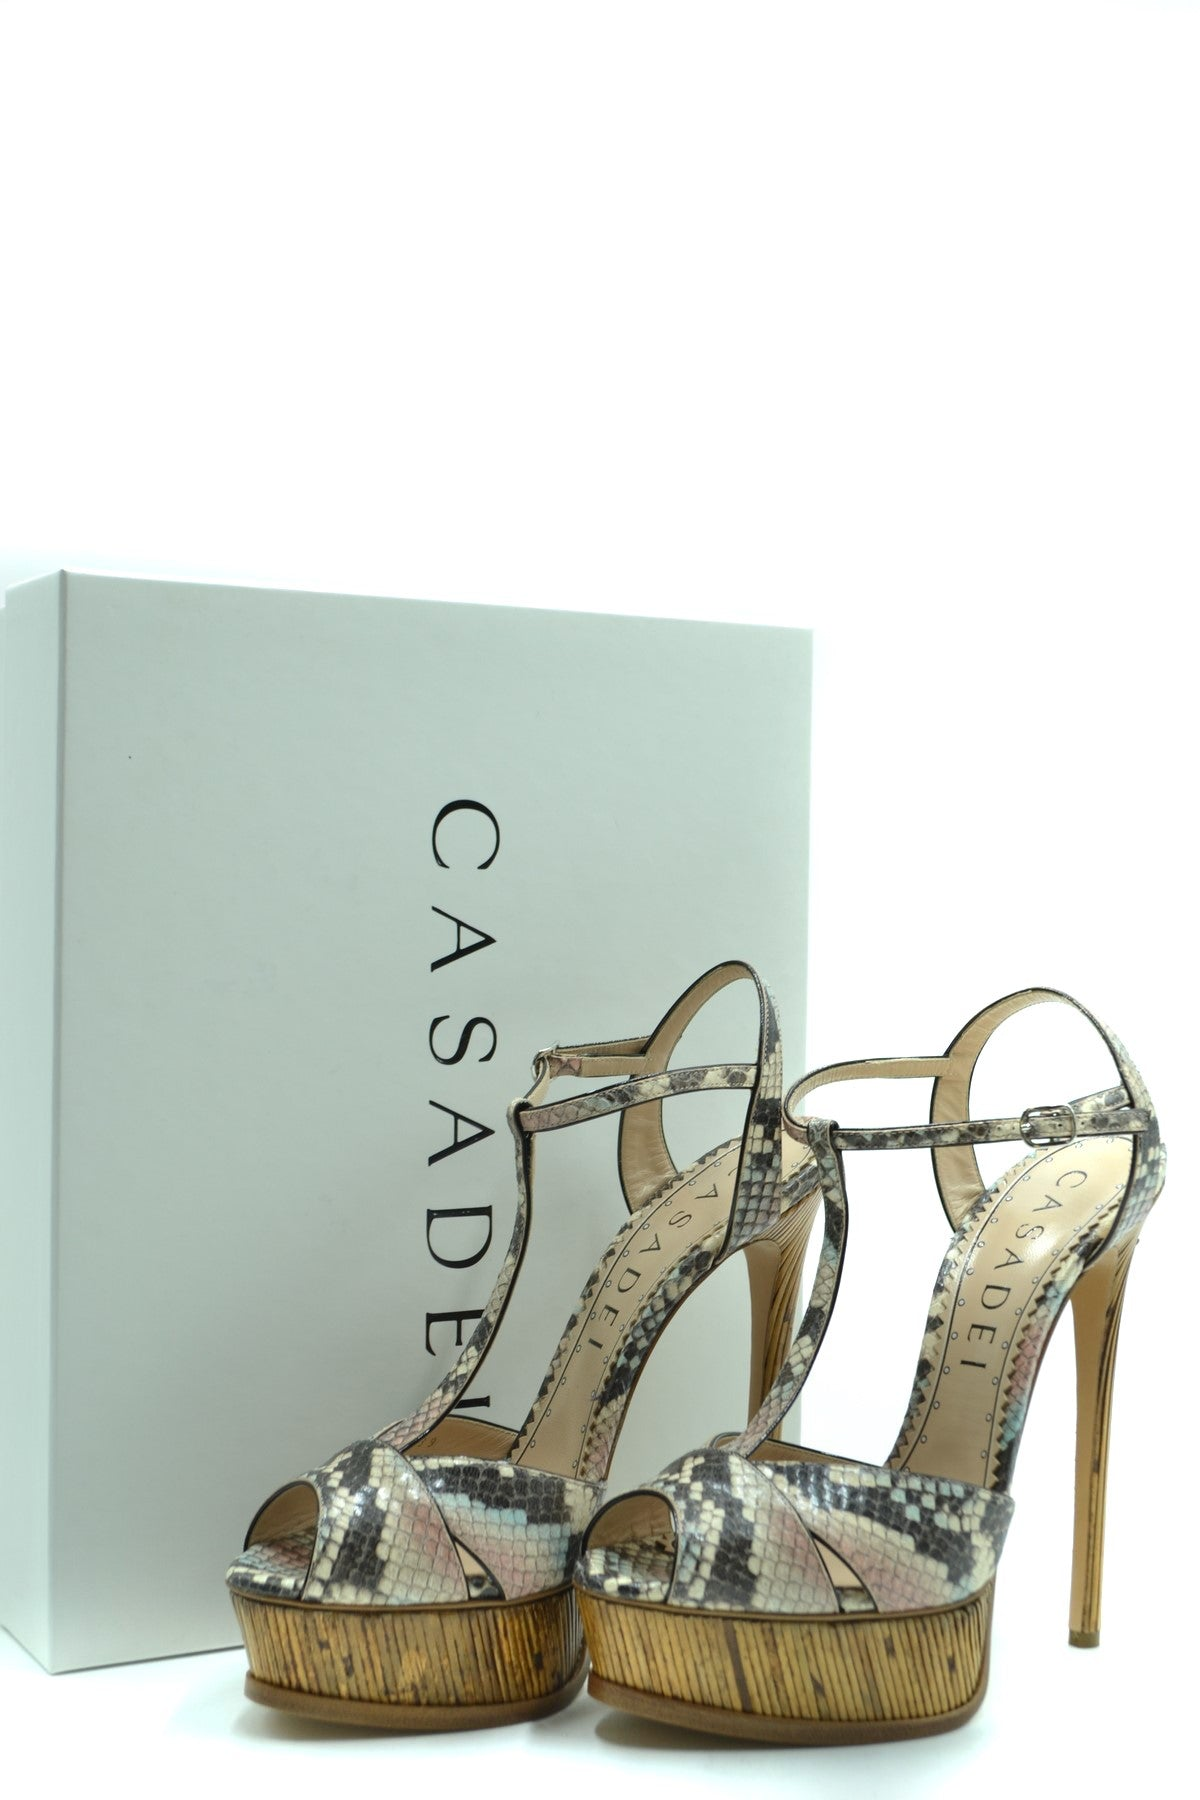 Shoes Casadei-Women's Fashion - Women's Shoes - Women's Sandals-Product Details Terms: New With LabelMain Color: MulticolorType Of Accessory: ShoesSeason: Spring / SummerMade In: ItalyGender: WomanPlatform'S Height: 4 CmHeel'S Height: 15 CmSize: EuComposition: Leather 100%Year: 2020Manufacturer Part Number: 1L579P1401T0134A552-Keyomi-Sook